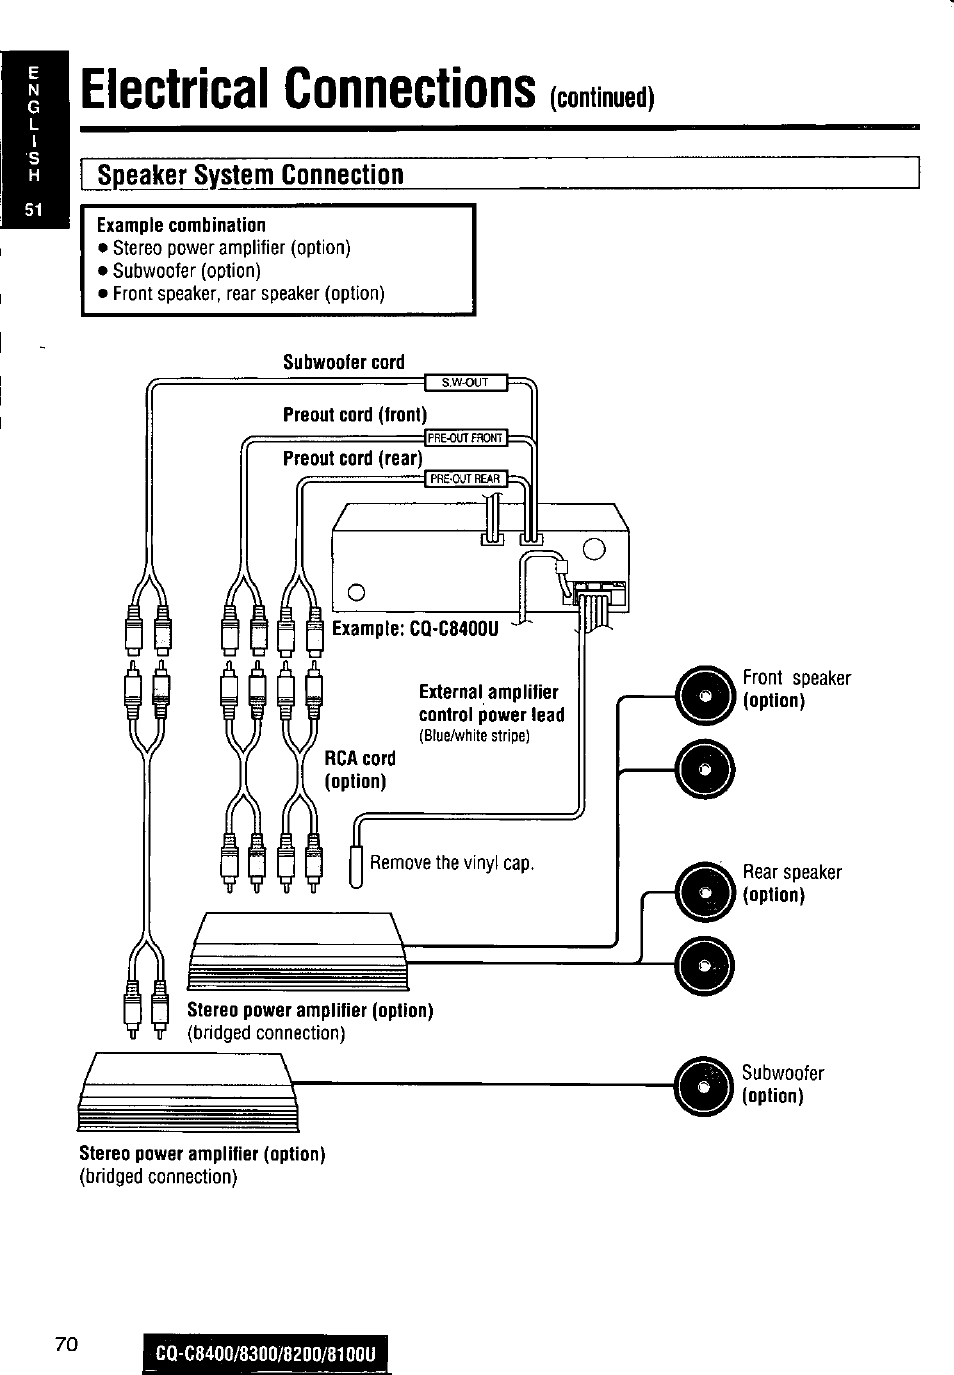 exciting panasonic cq c7105u wiring diagram contemporary Panasonic CQ C7103u Panasonic CQ C7103u Manual